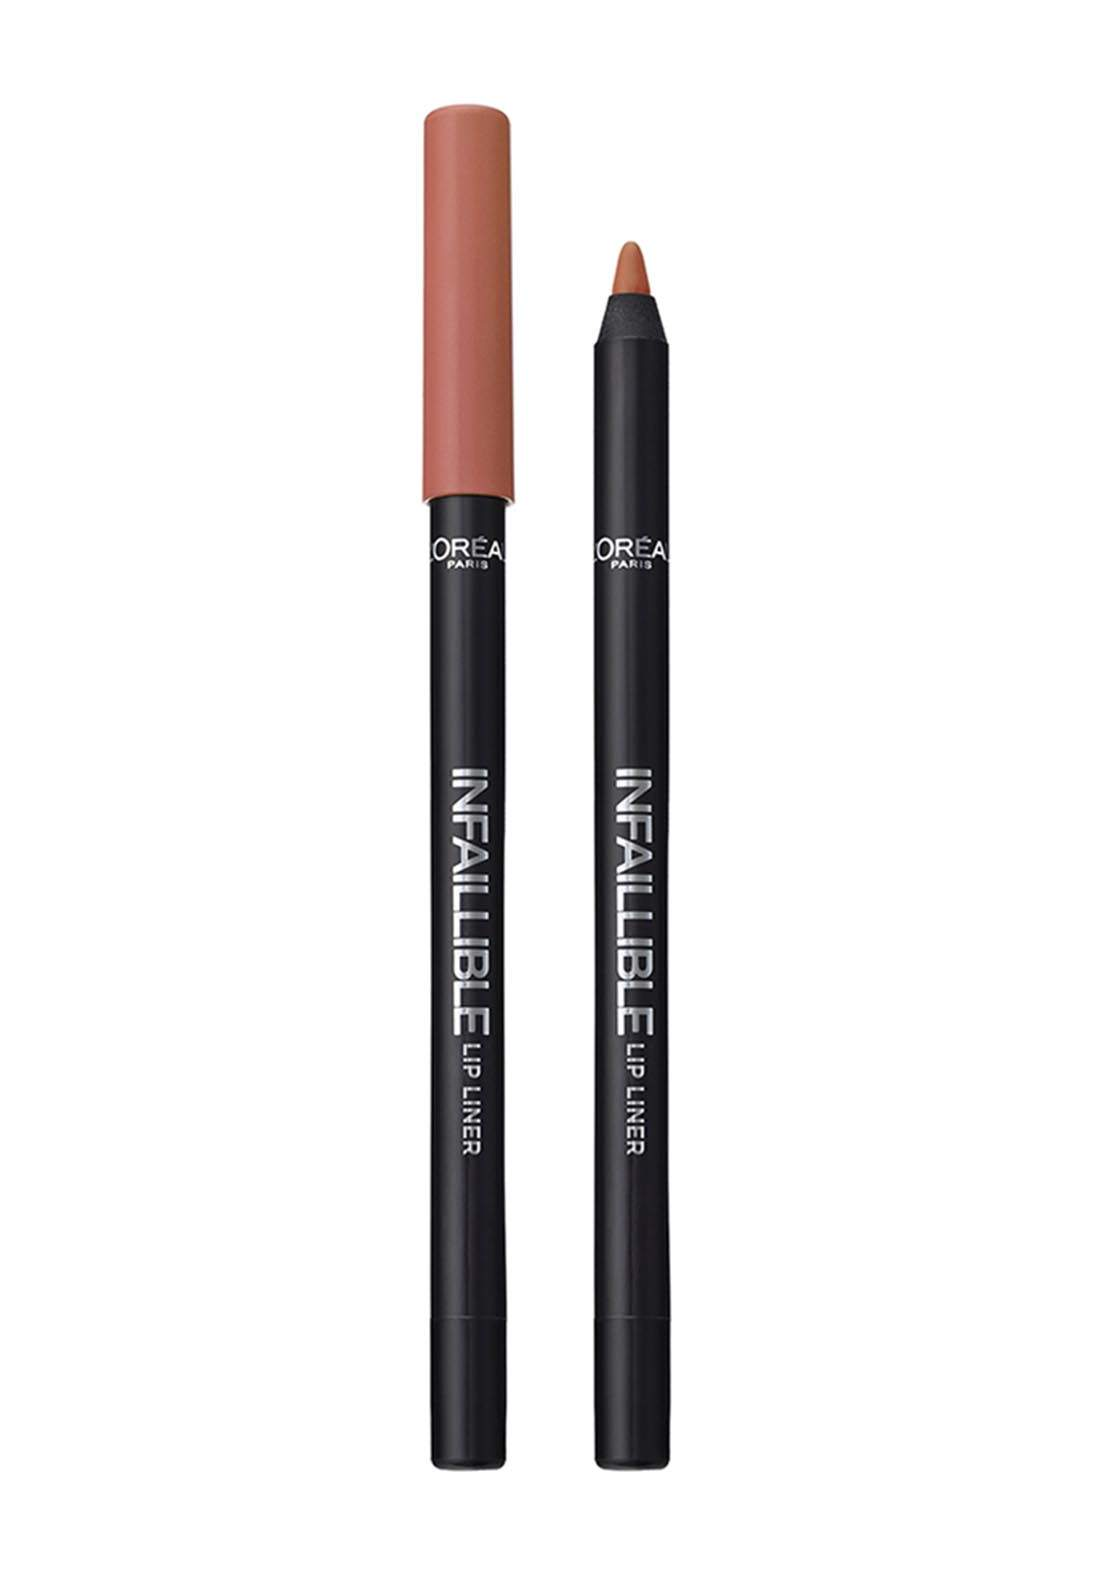 L'Oreal Paris Infallible Lip Liner 101 Gone with the Nude (027-0972) قلم محدد للشفاه